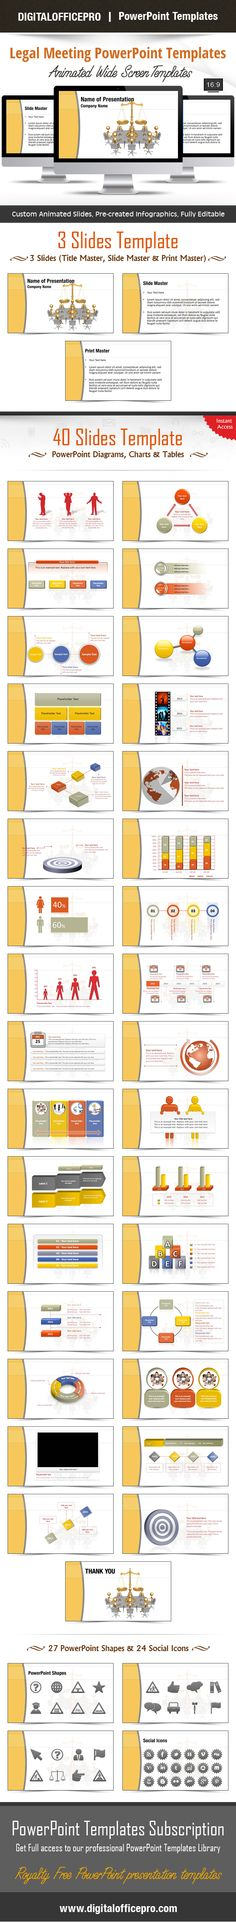 Impress and Engage your audience with Legal Meeting PowerPoint Template and Legal Meeting PowerPoint Backgrounds from DigitalOfficePro. Each template comes with a set of PowerPoint Diagrams, Charts & Shapes and are available for instant